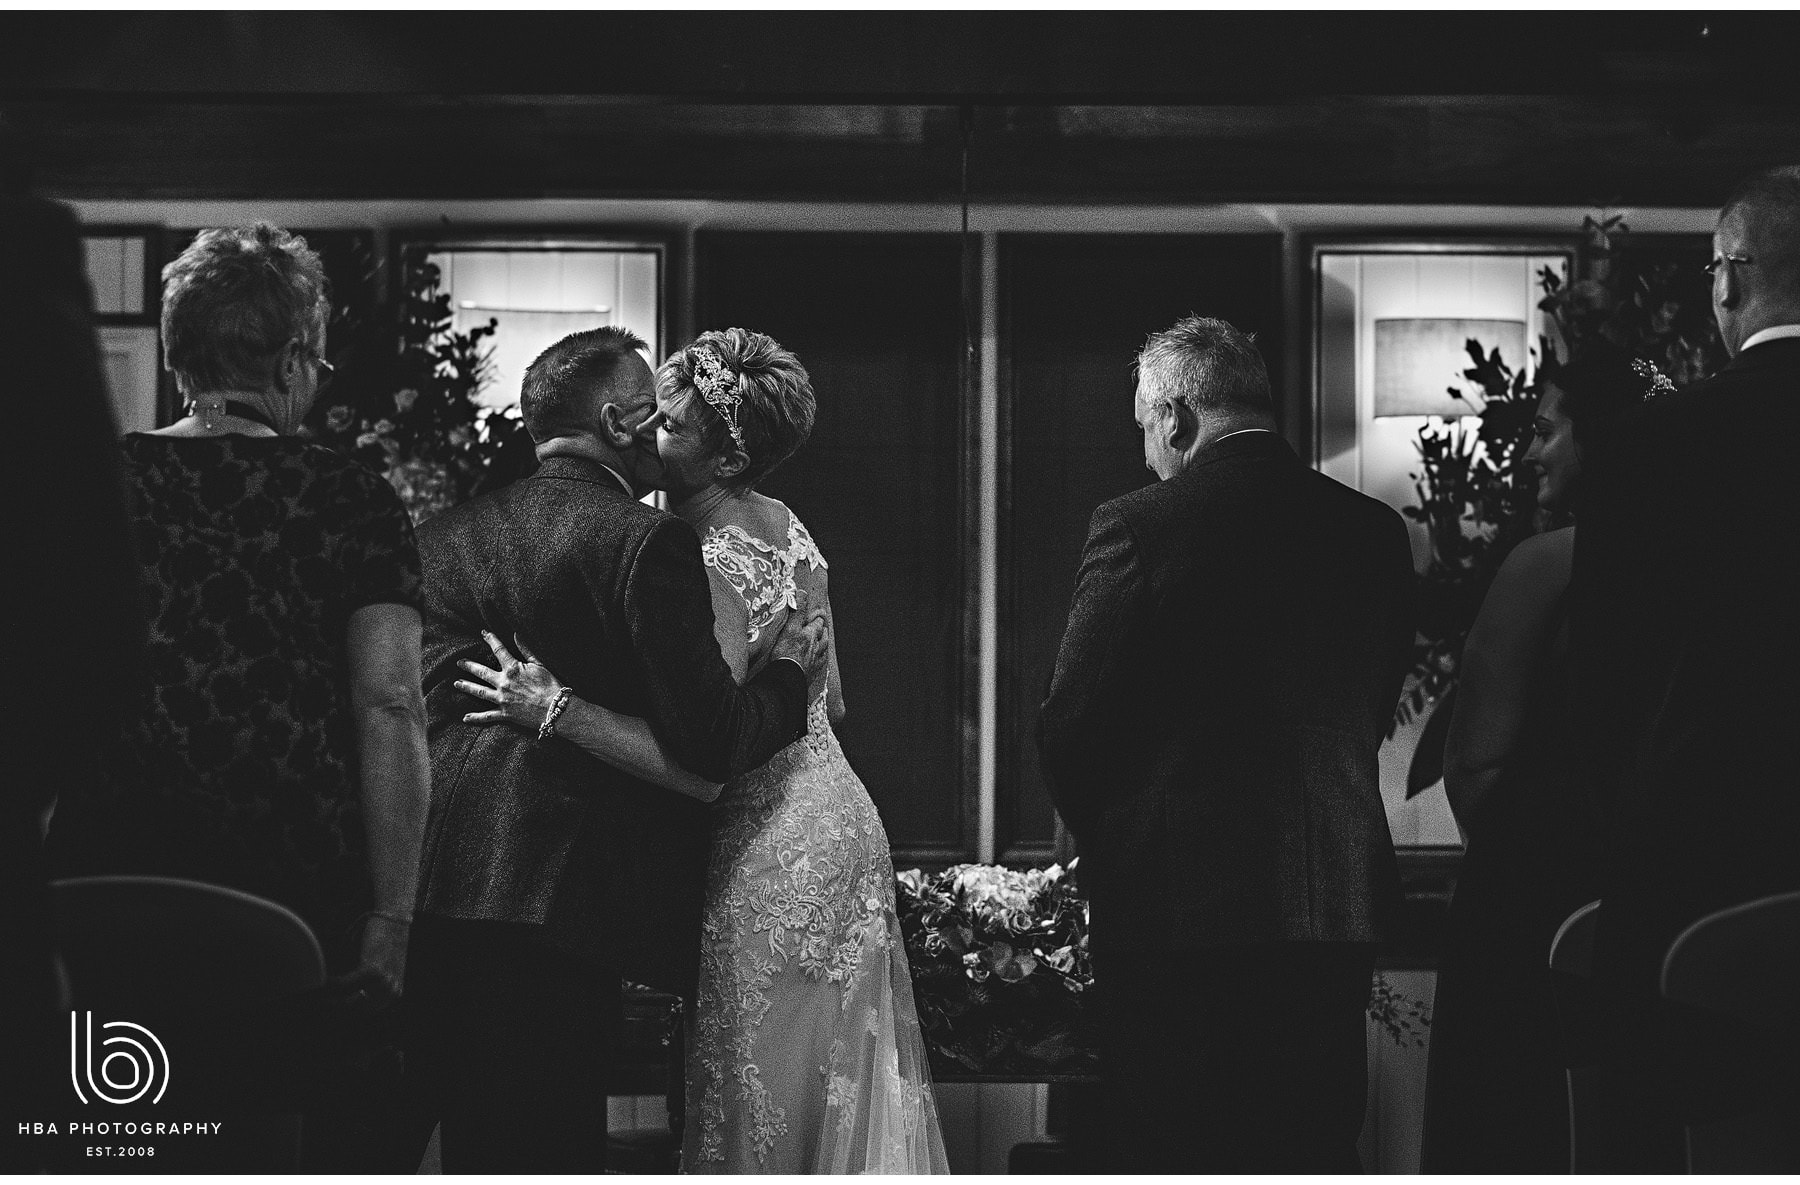 the bride kissing the groom